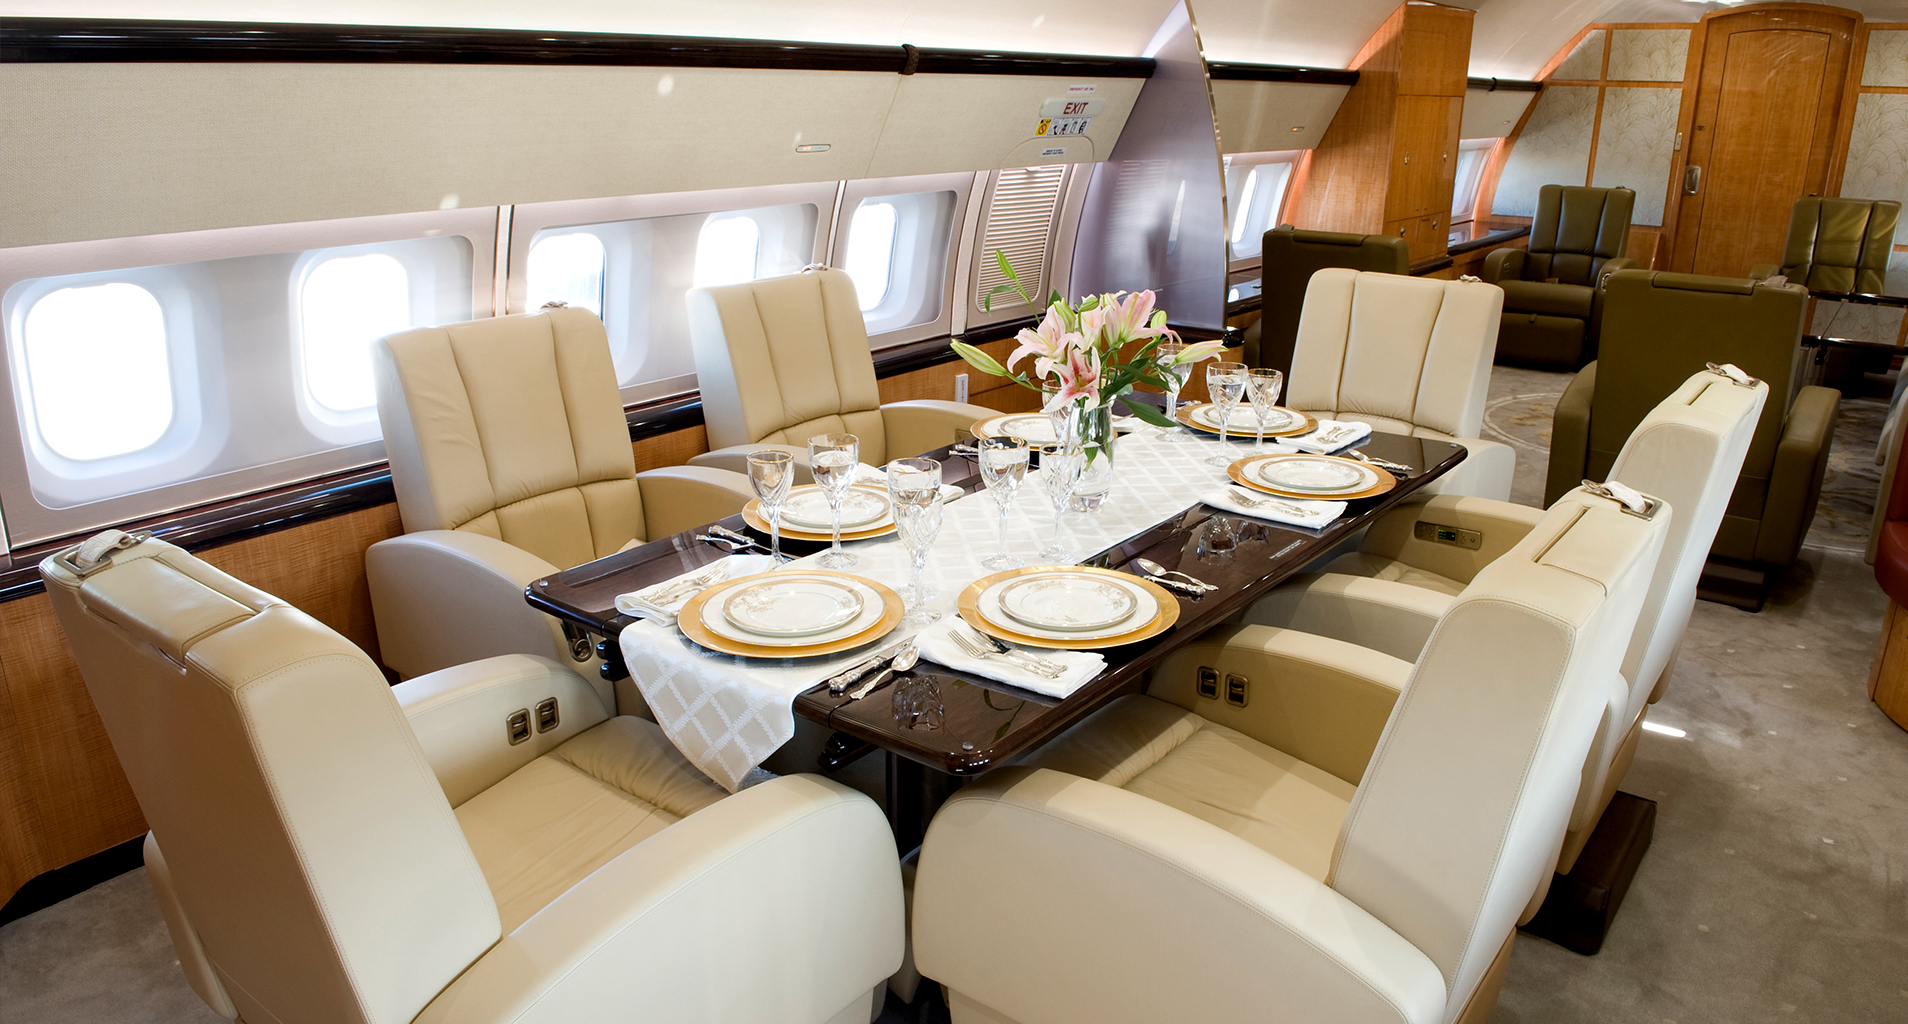 BOEING BUSINESS JET CHARTER BOEING BUSINESS JET PRIVATE CHARTER BOEING BUSINESS JET CHARTER9 - Boeing private jet builder boeing private charter and boeing jet broker